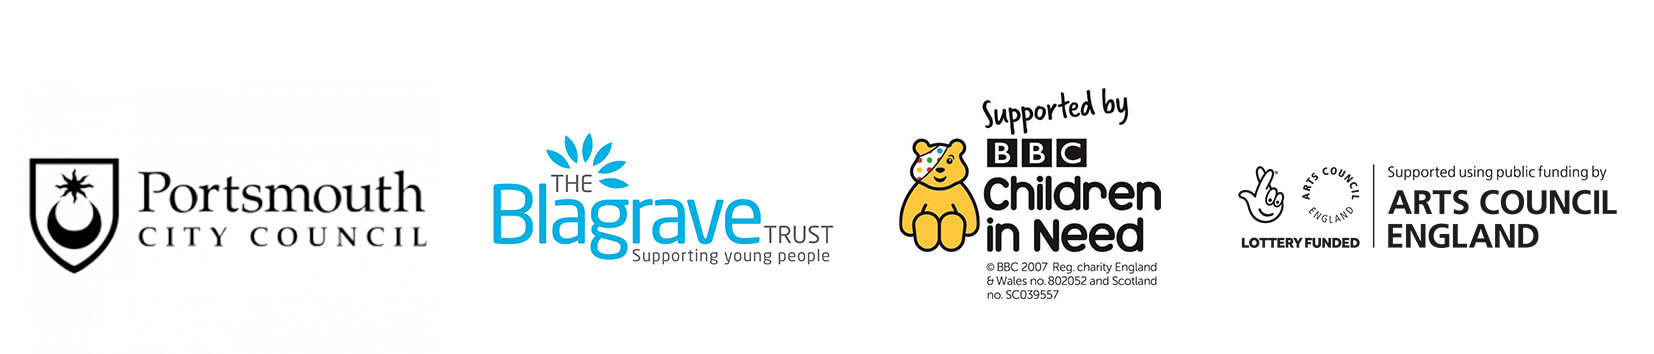 Portsmouth City Council Logo, The Blagrave Trust logo, BBC Children in Need logo, Arts Council England logo